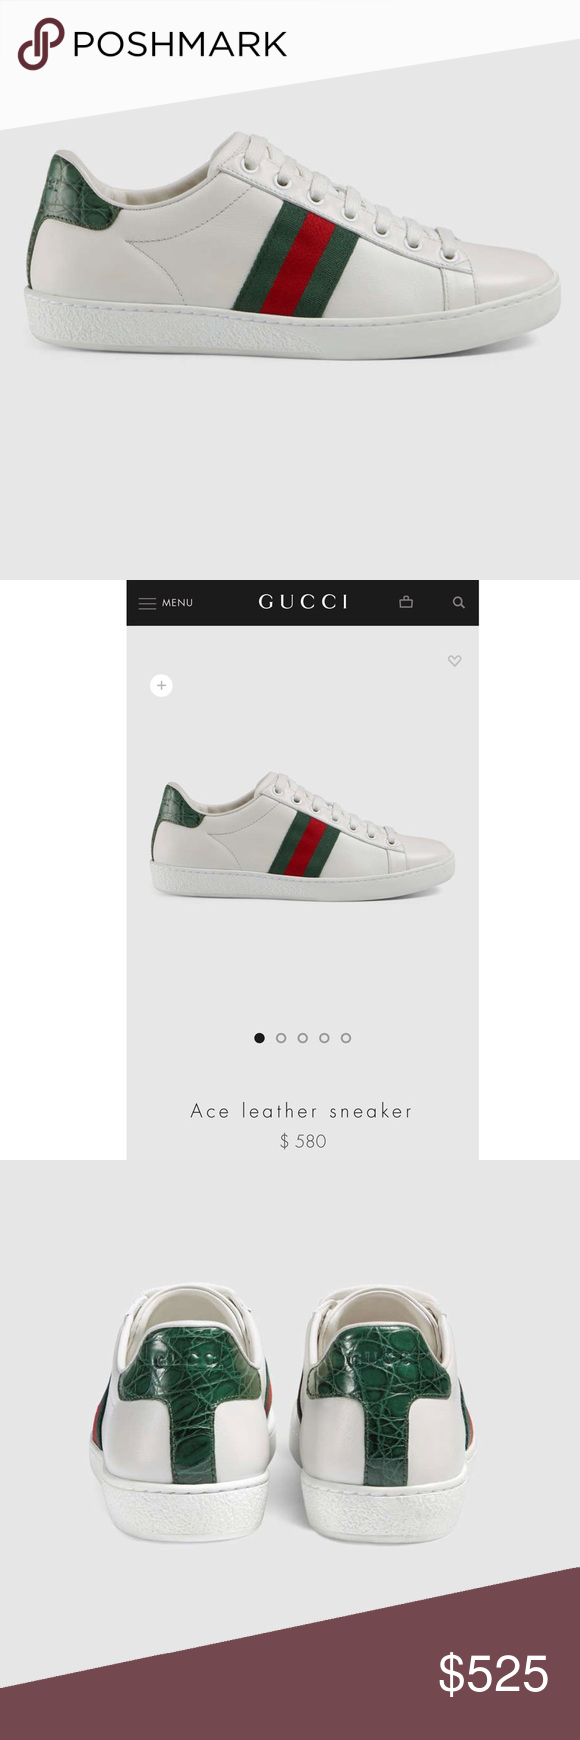 833bc760102 Gucci Ace Sneakers (women s) Authentic Gucci Ace Sneakers. Brand new. Box